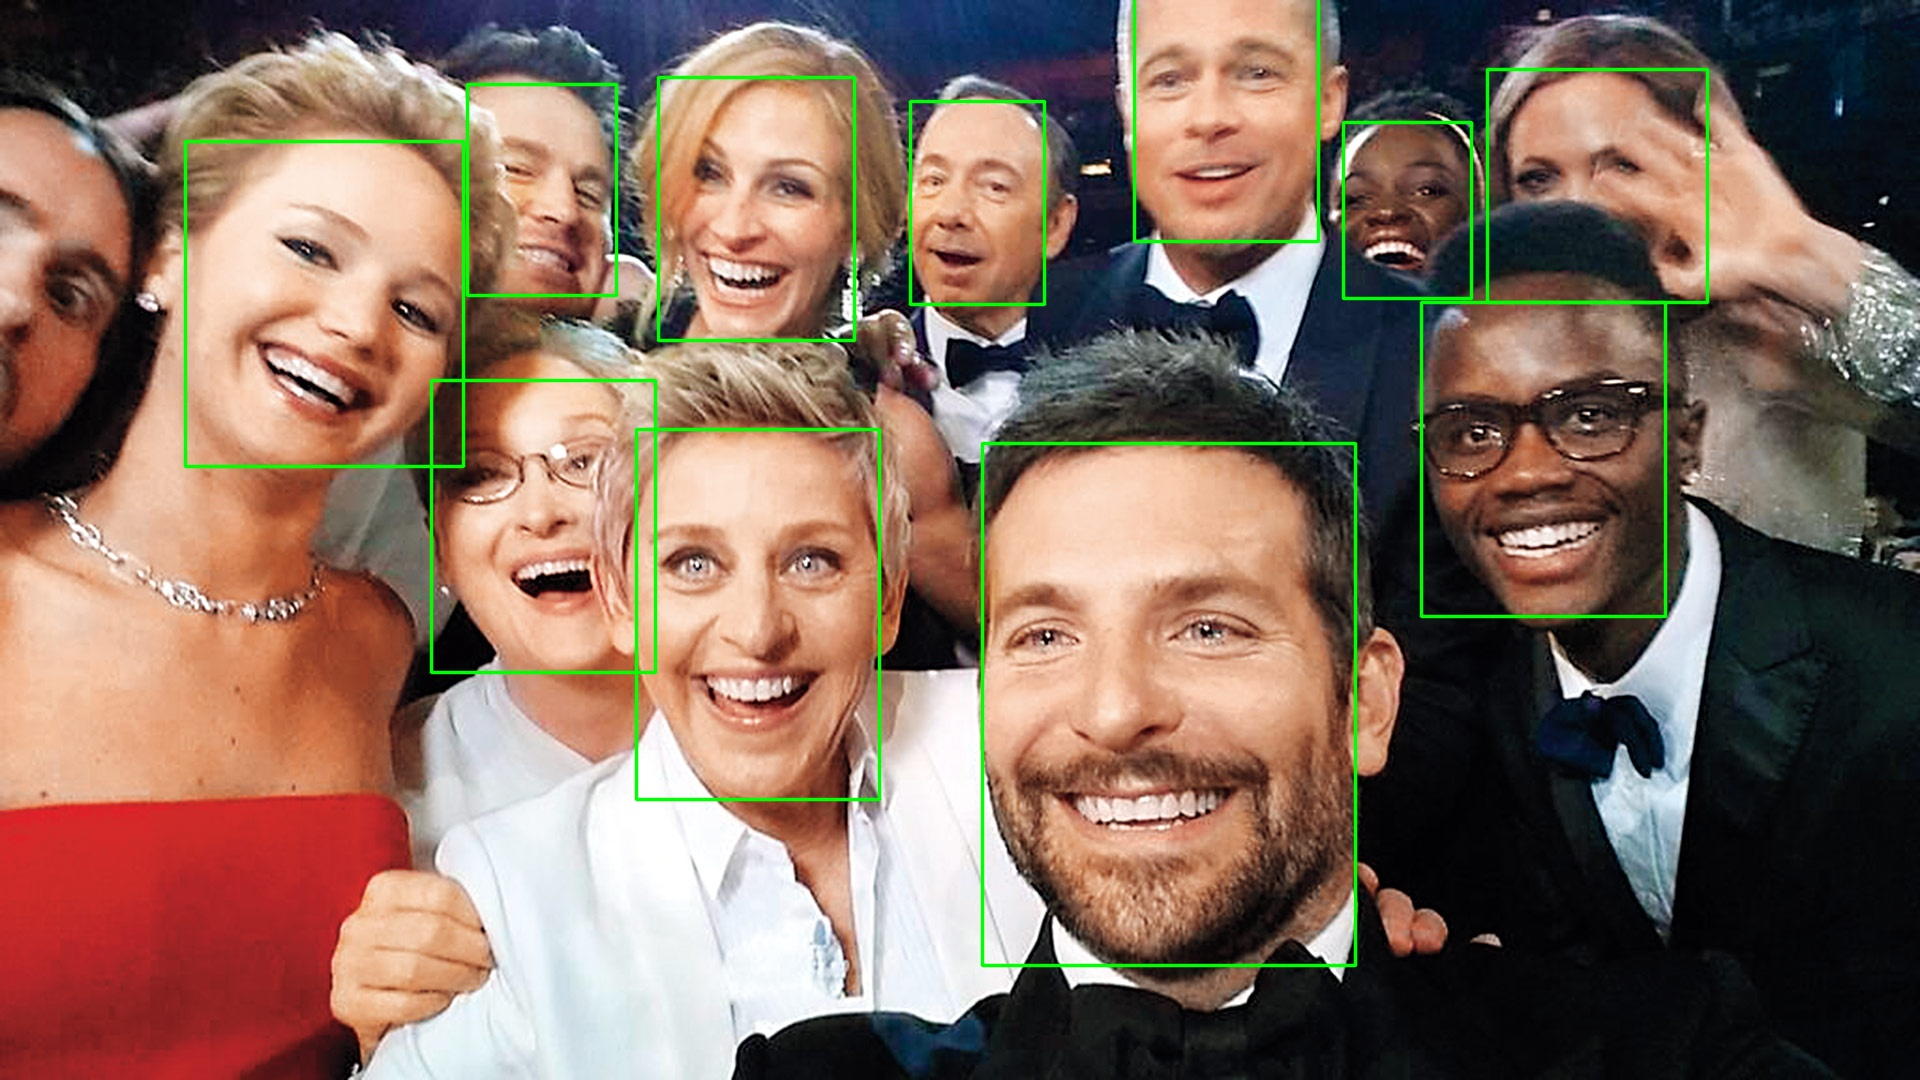 Image with all the faces marked by a green rectangle